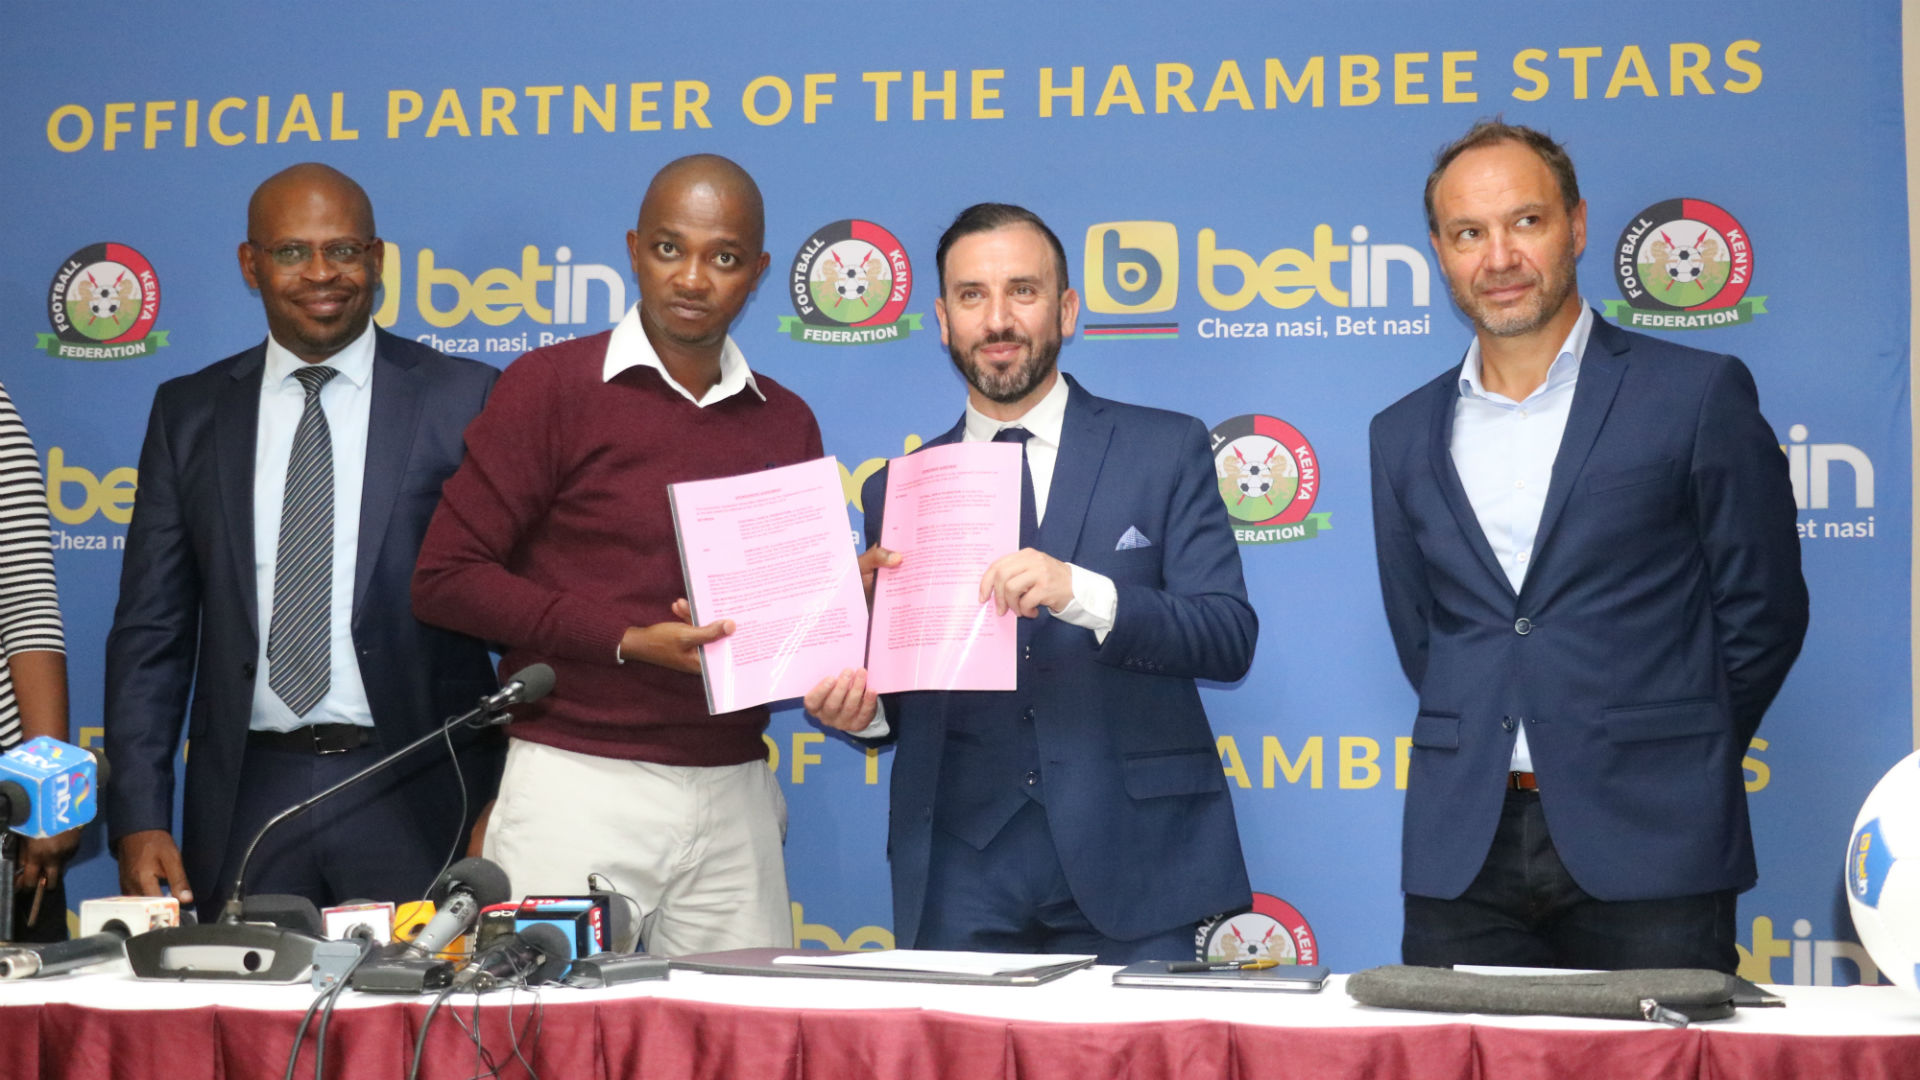 Betin pumps in Sh20m for Harambee Stars ahead of 2019 Afcon finals